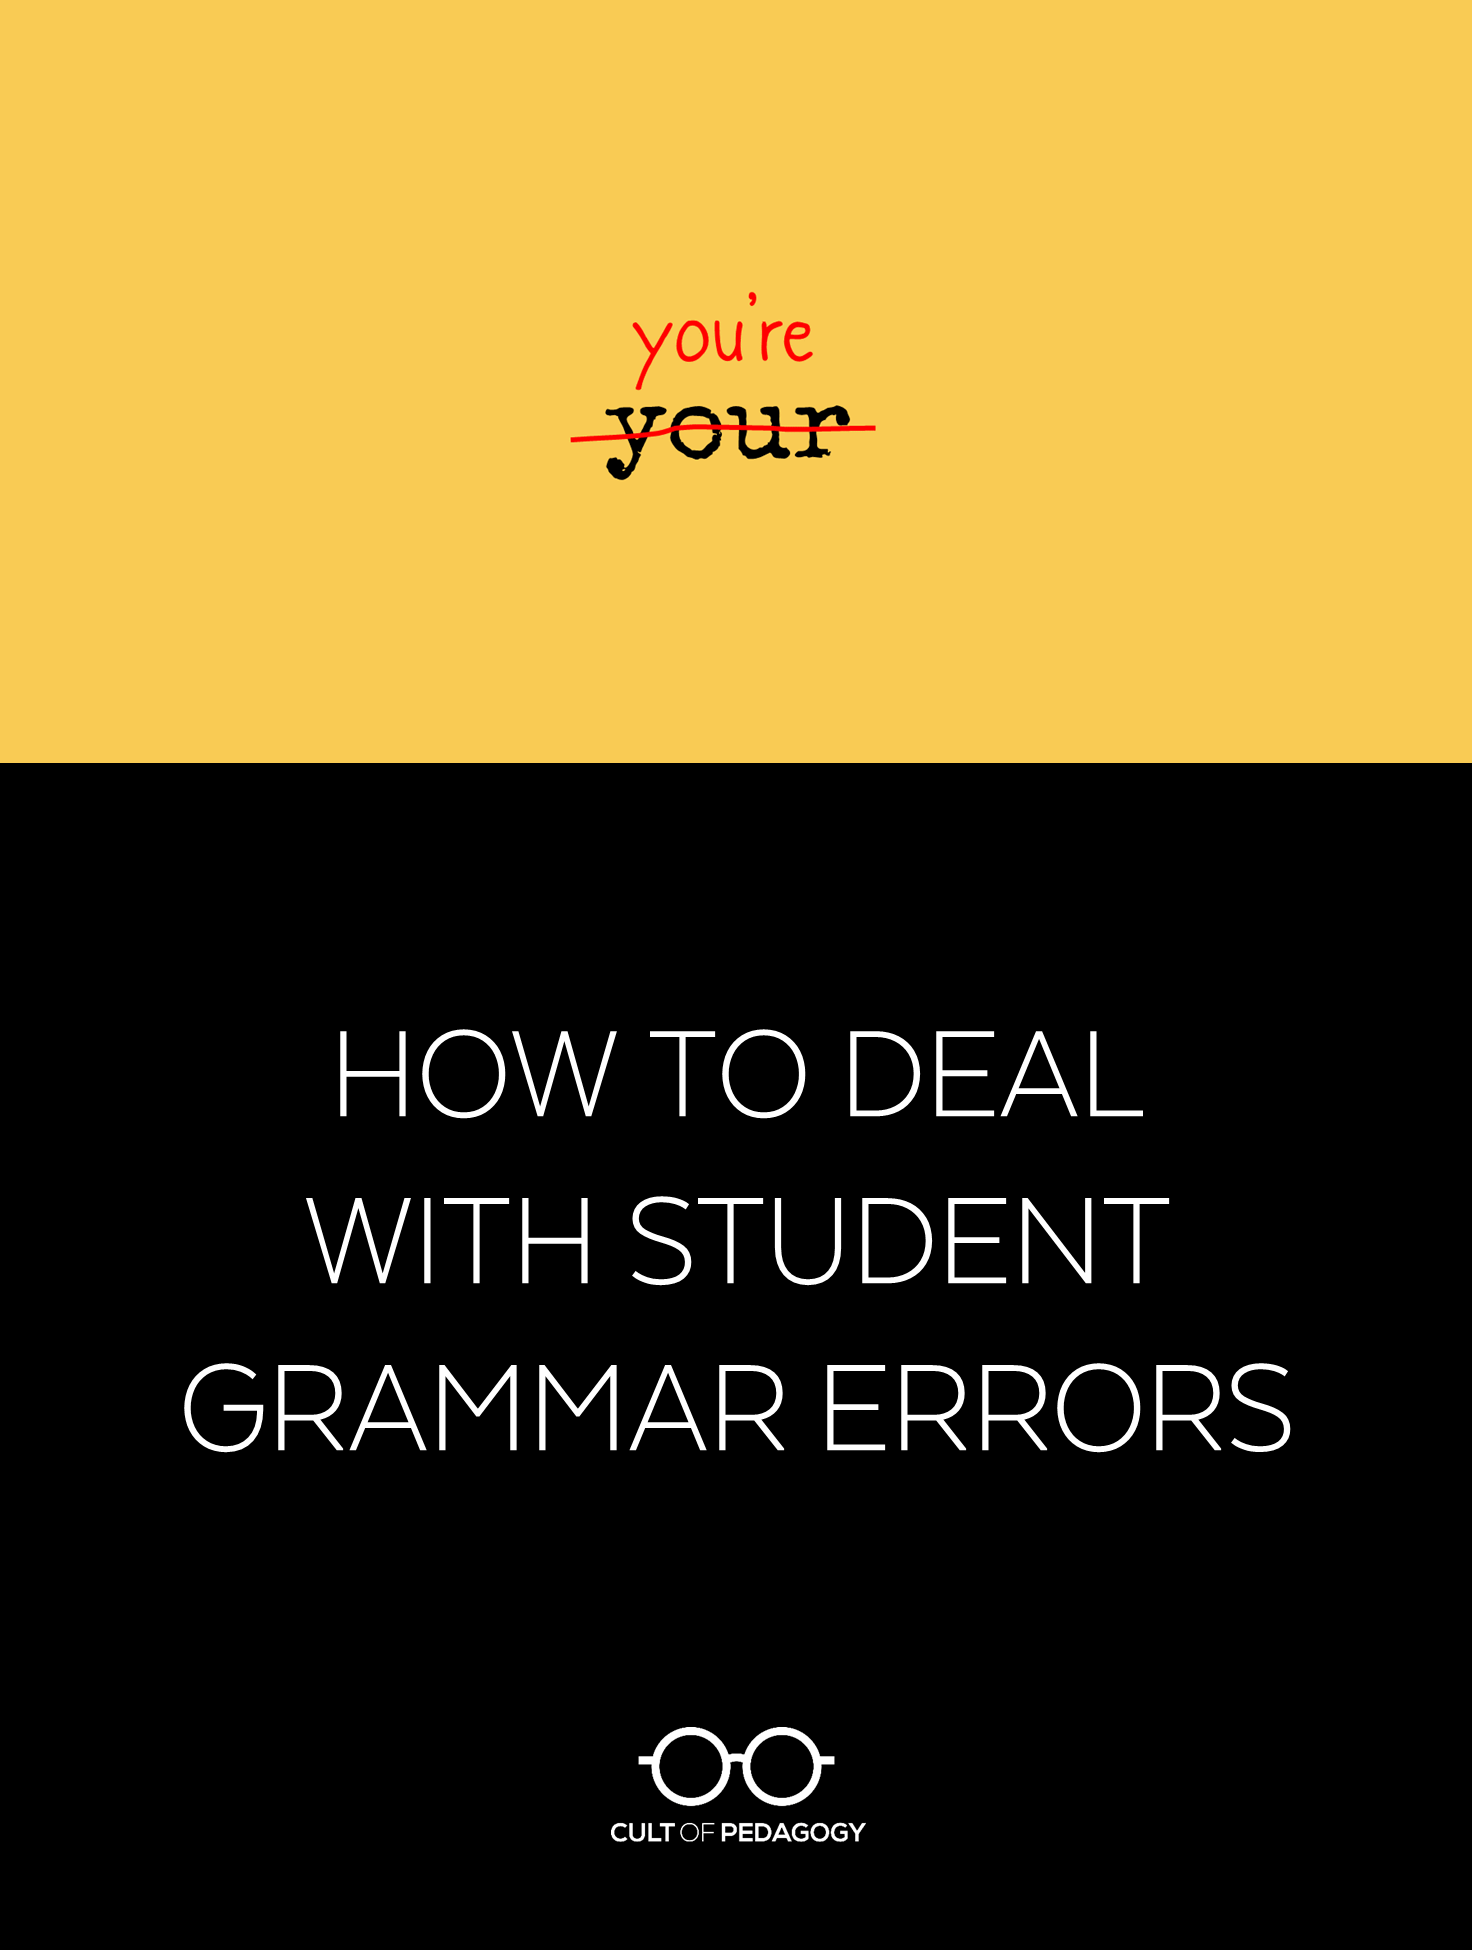 hight resolution of How to Deal with Student Grammar Errors   Cult of Pedagogy